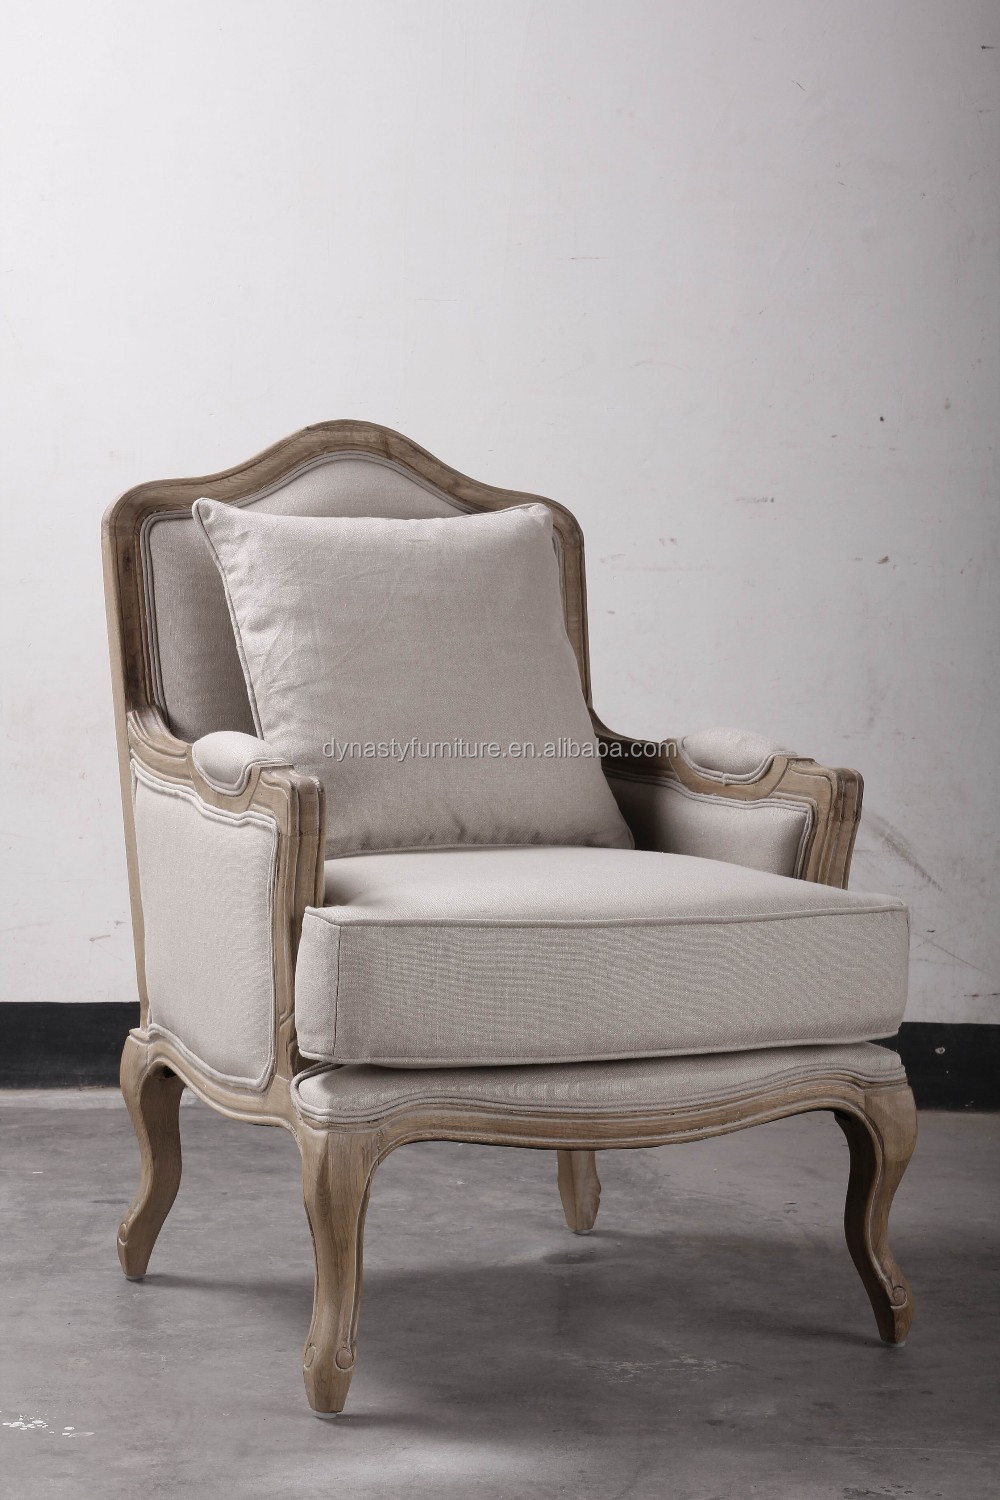 french style wooden furniture living room sofa chair set